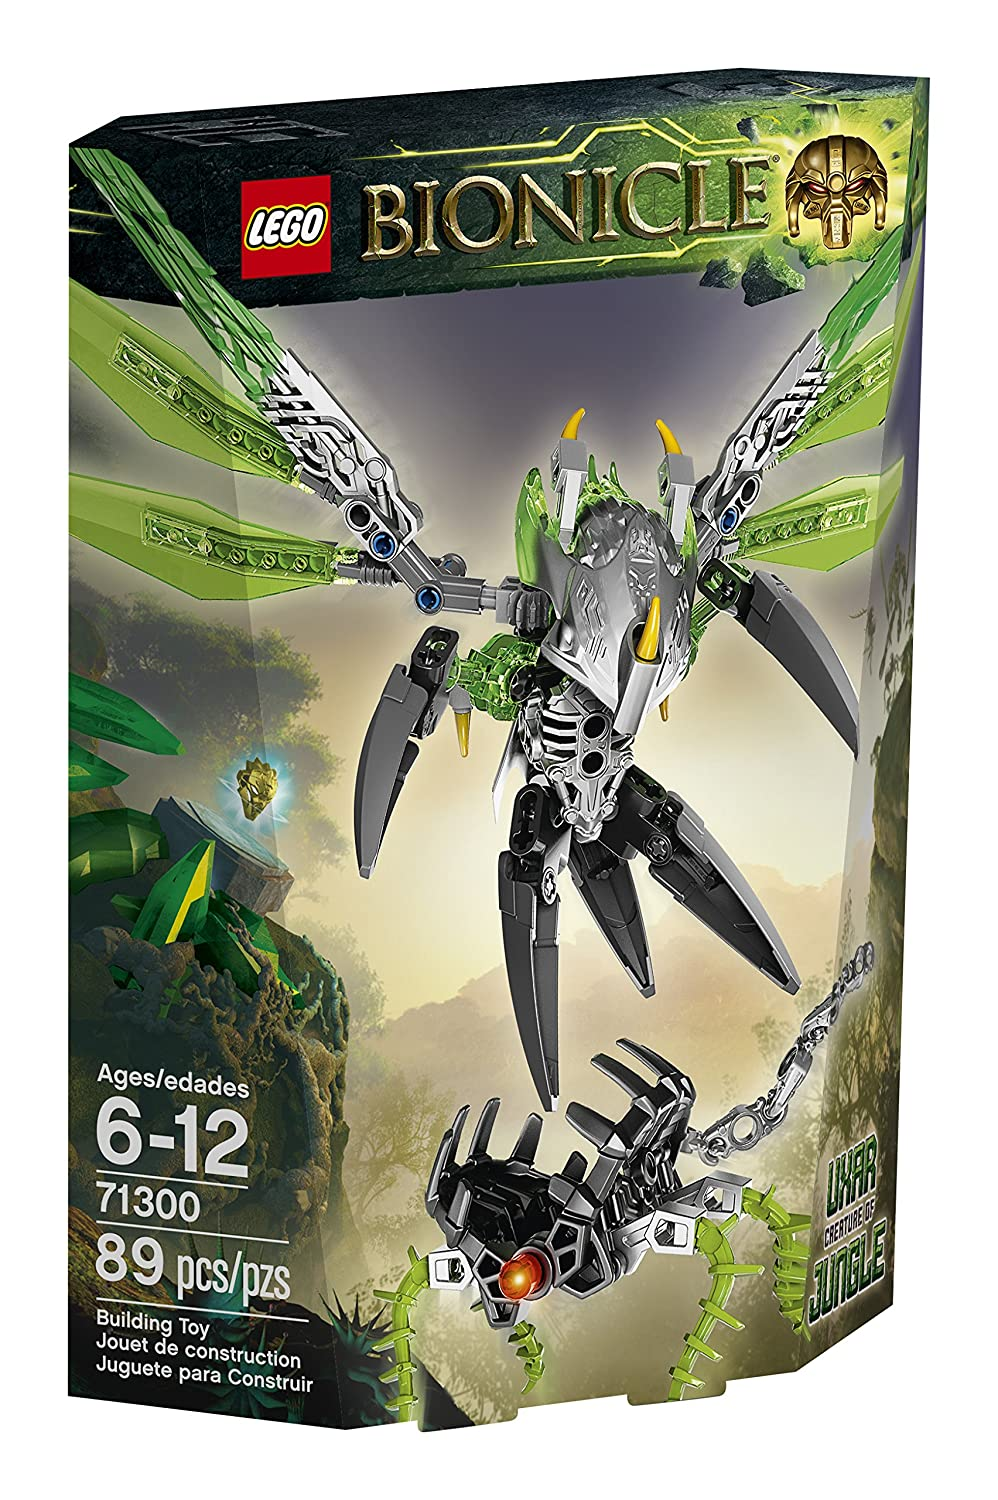 Top 15 Best Lego BIONICLE Sets Reviews in 2020 15